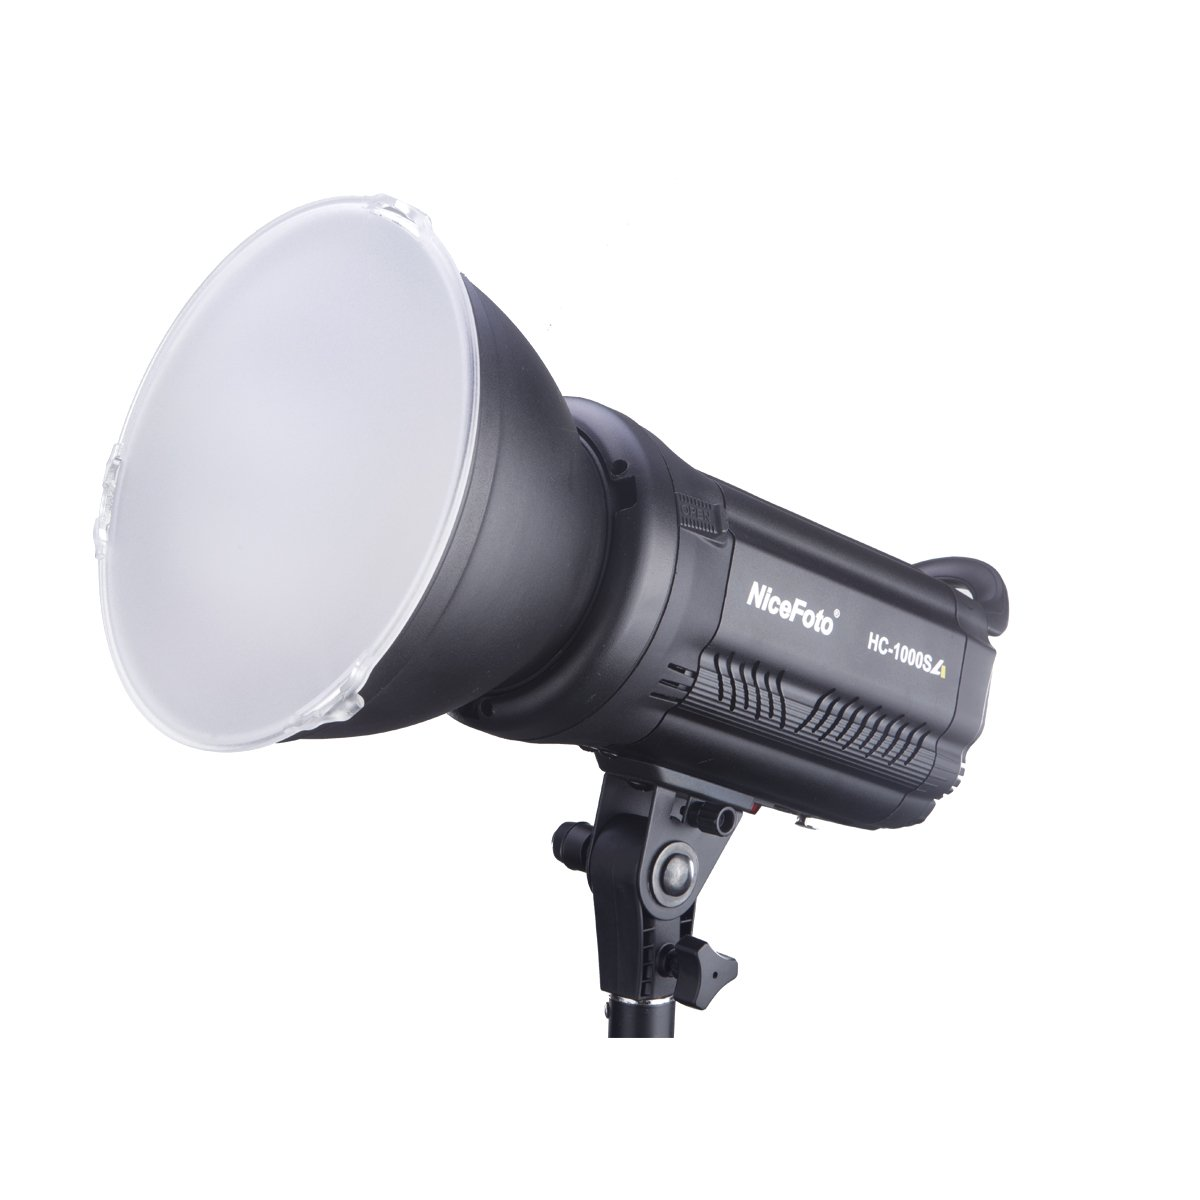 Nicefoto HC-1000SA Multiple Scenario Mode Led Video Light Silent Daylight For Portrait Photography Continuous Lighting Professional Lighting